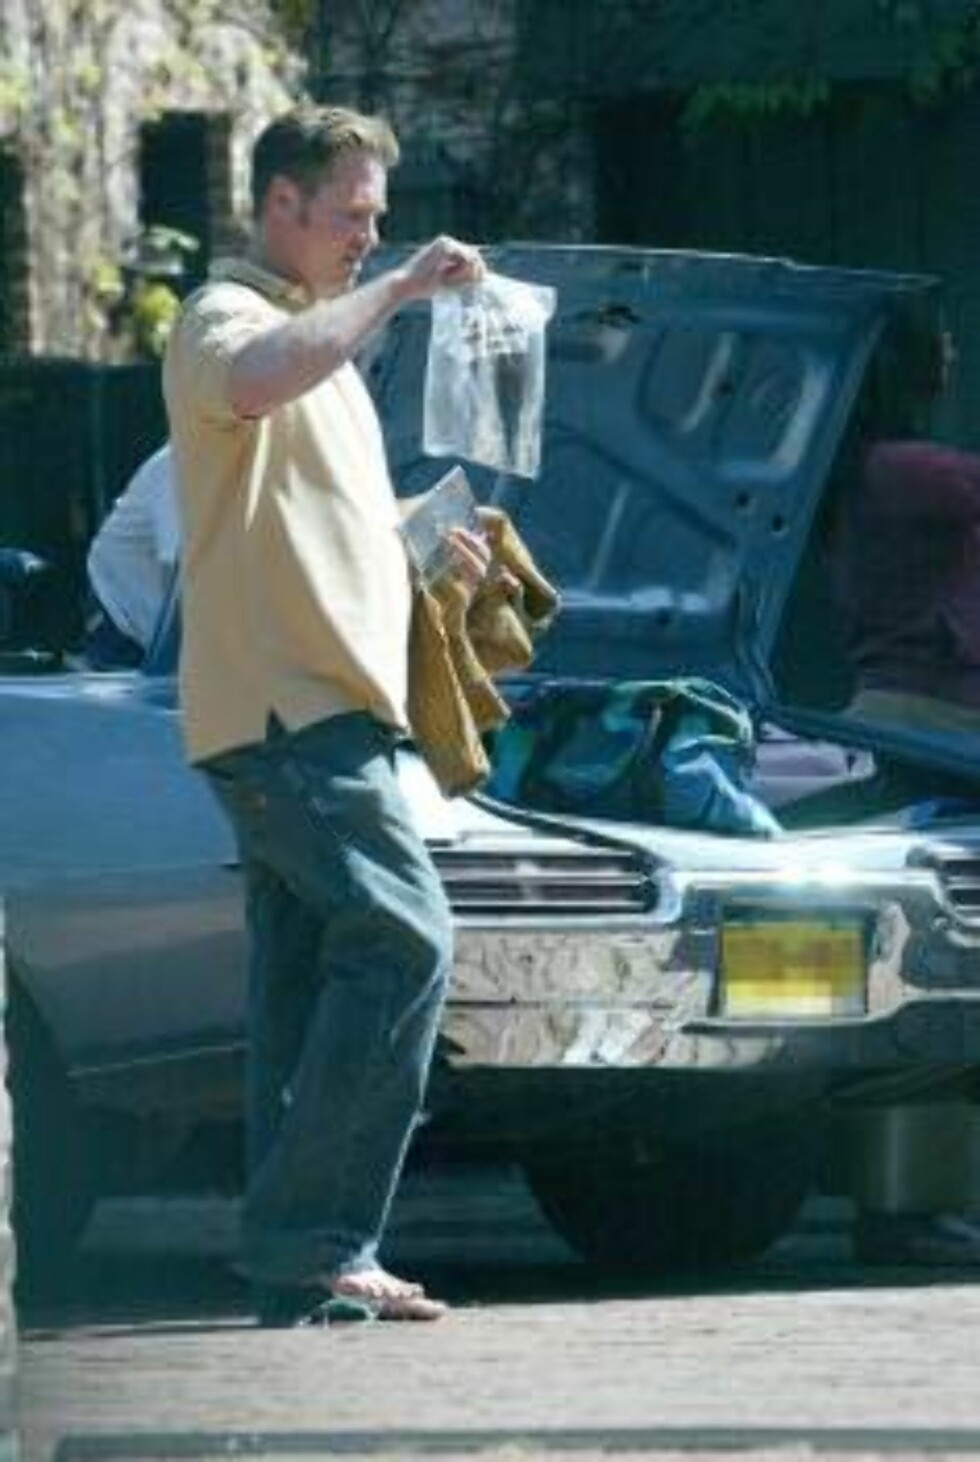 LOS ANGELES 040328 - Val Kilmer barefoot loading up his car in Hollywood.   PHOTO: Fame Pictures Code: 4002  COPYRIGHT STELLA PICTURES Foto: Stella Pictures